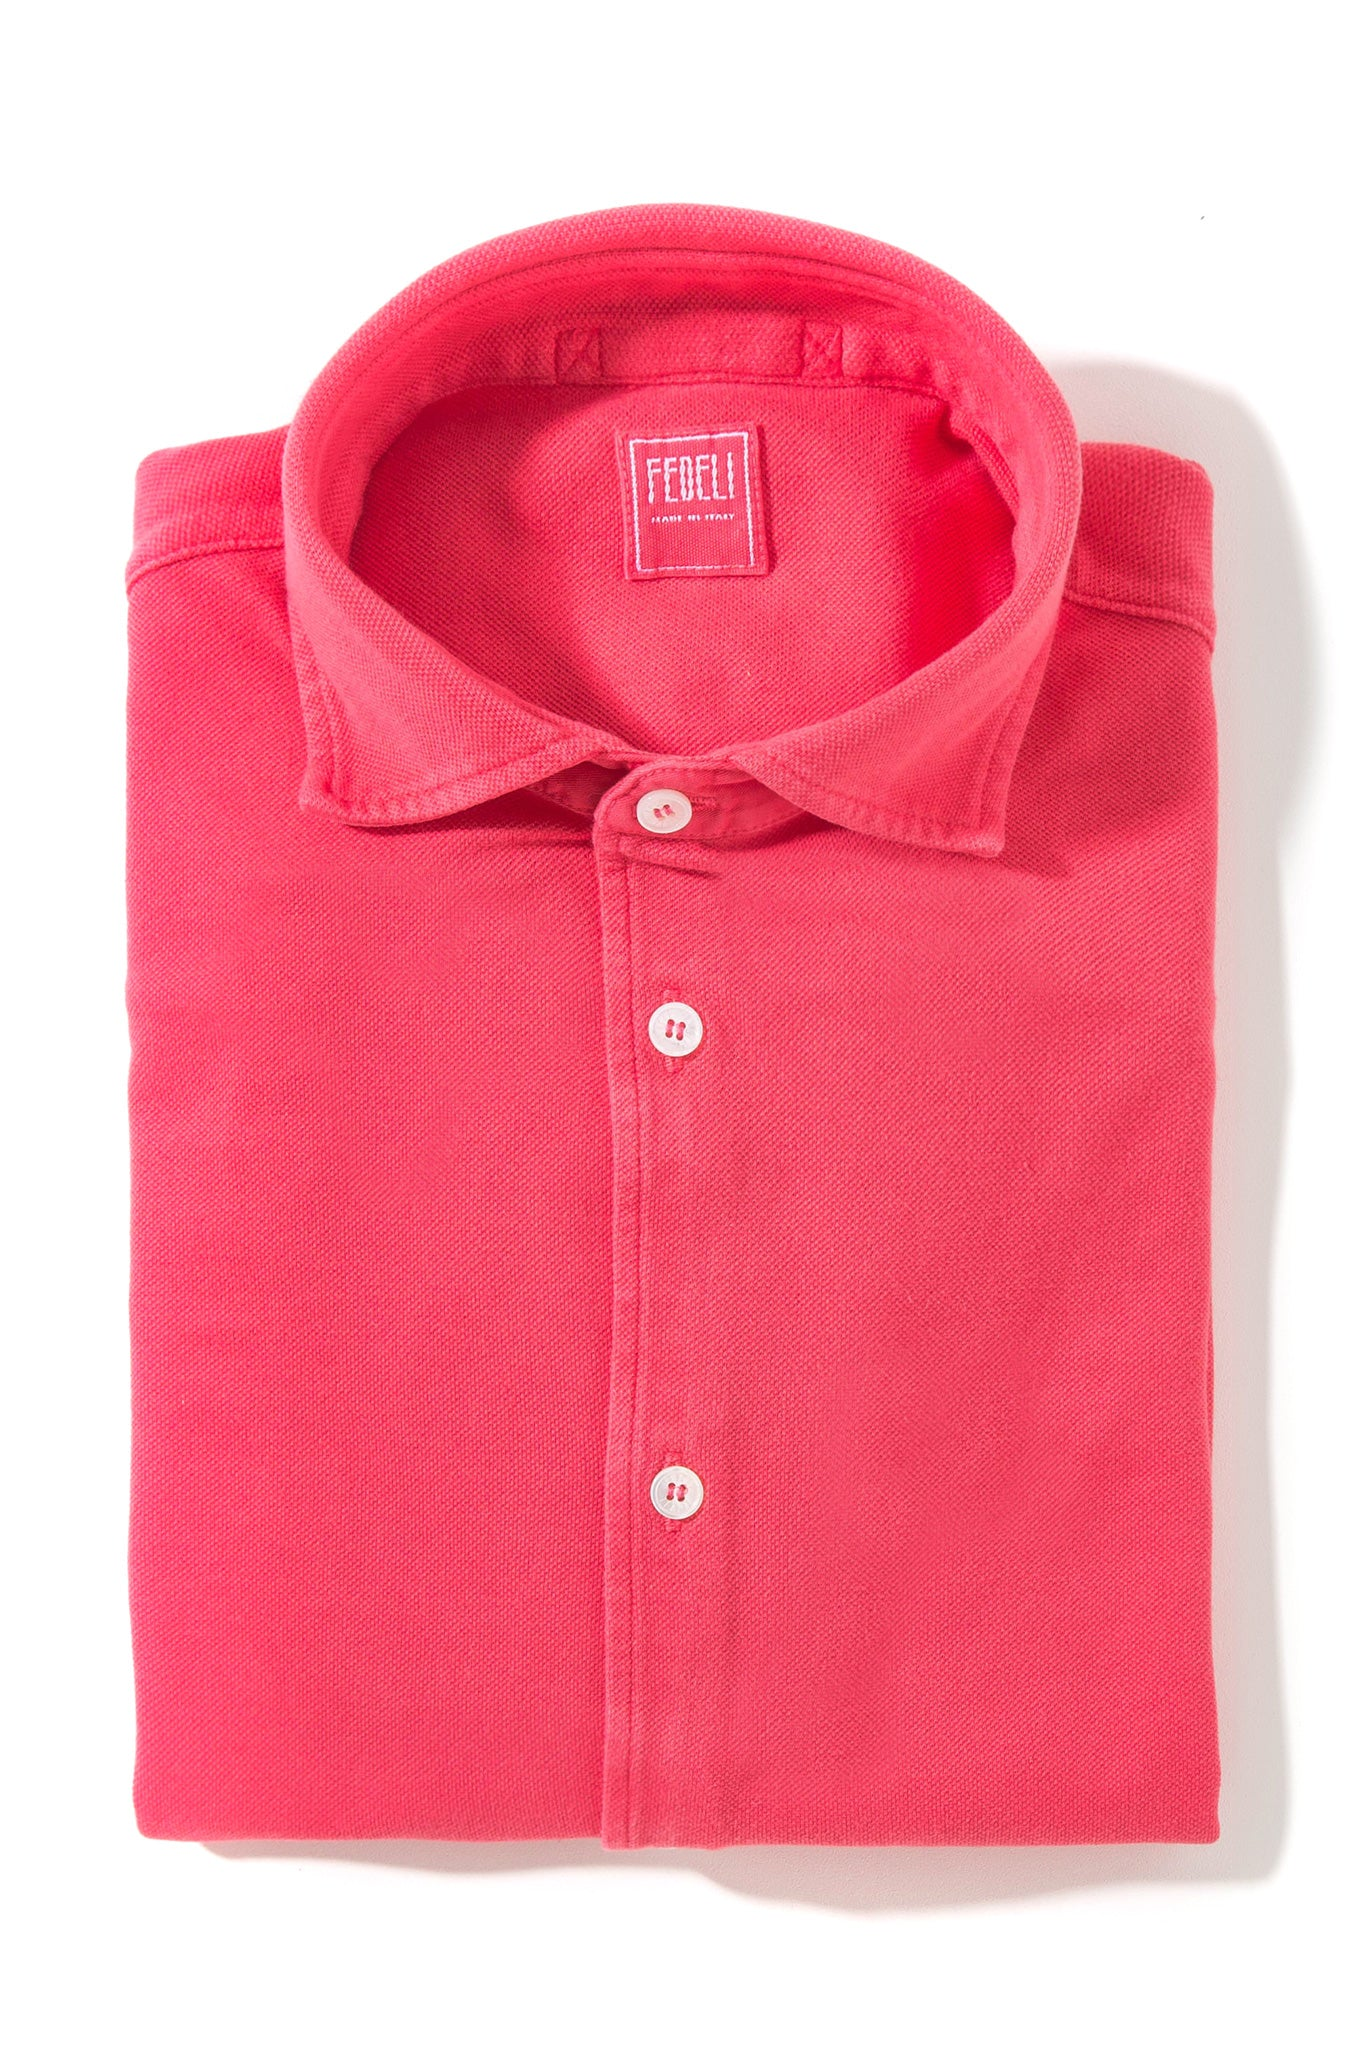 Fedeli Coral Errante Frosted Long Sleeve Polo (3726968455261)